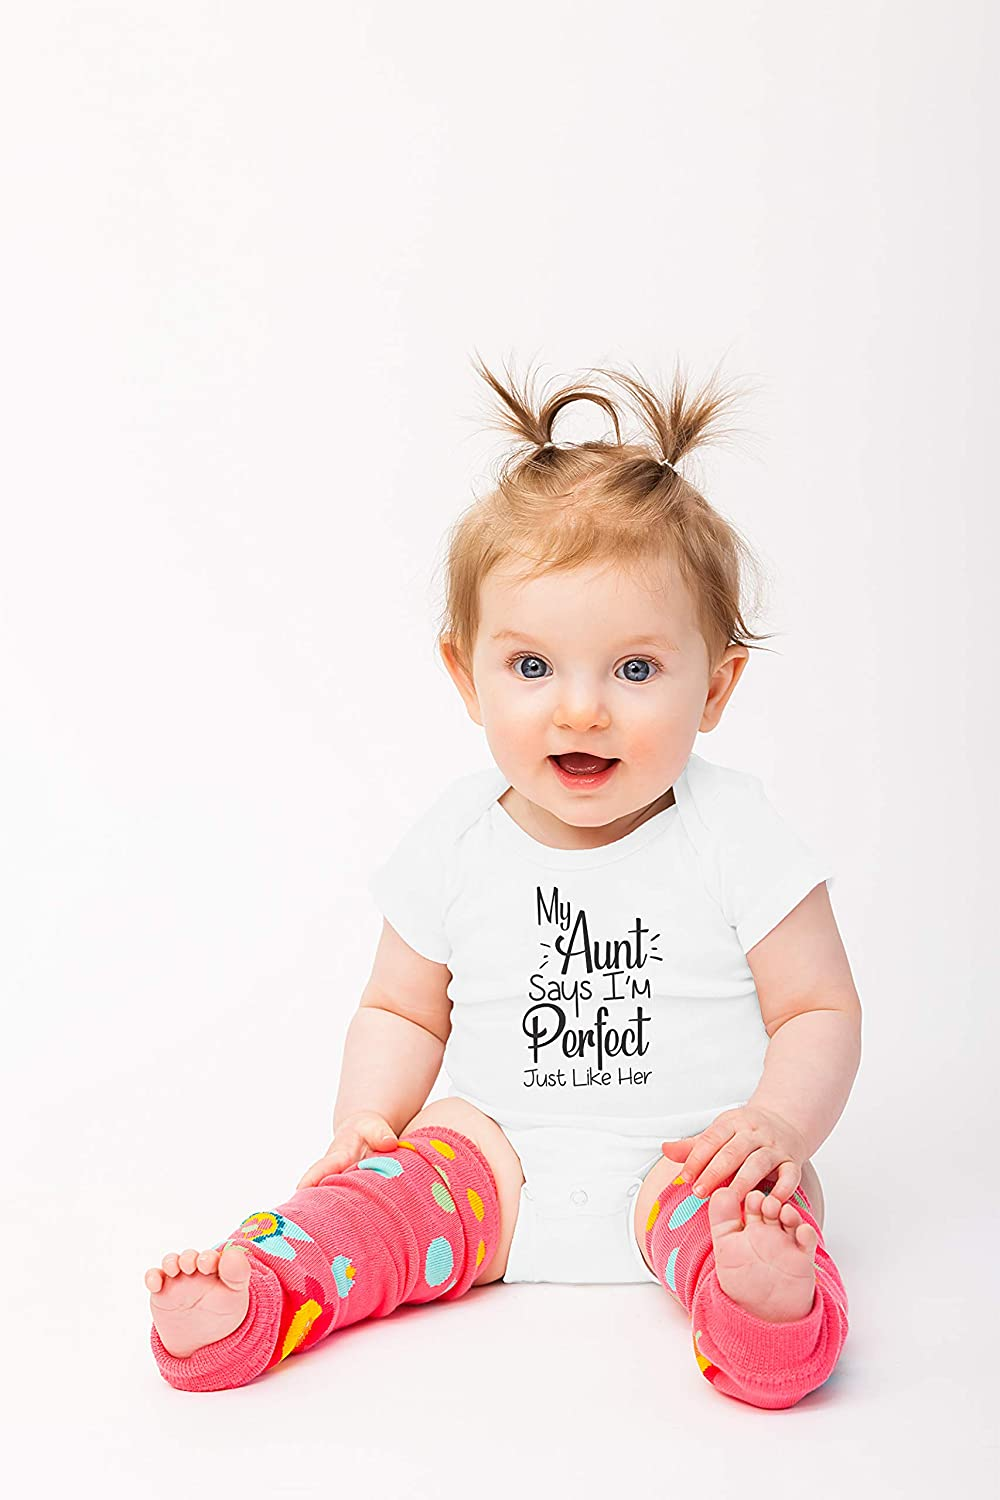 One-Piece Baby Bodysuit Funny Cute Infant Creeper My Aunt Says Im Perfect Just Like Her